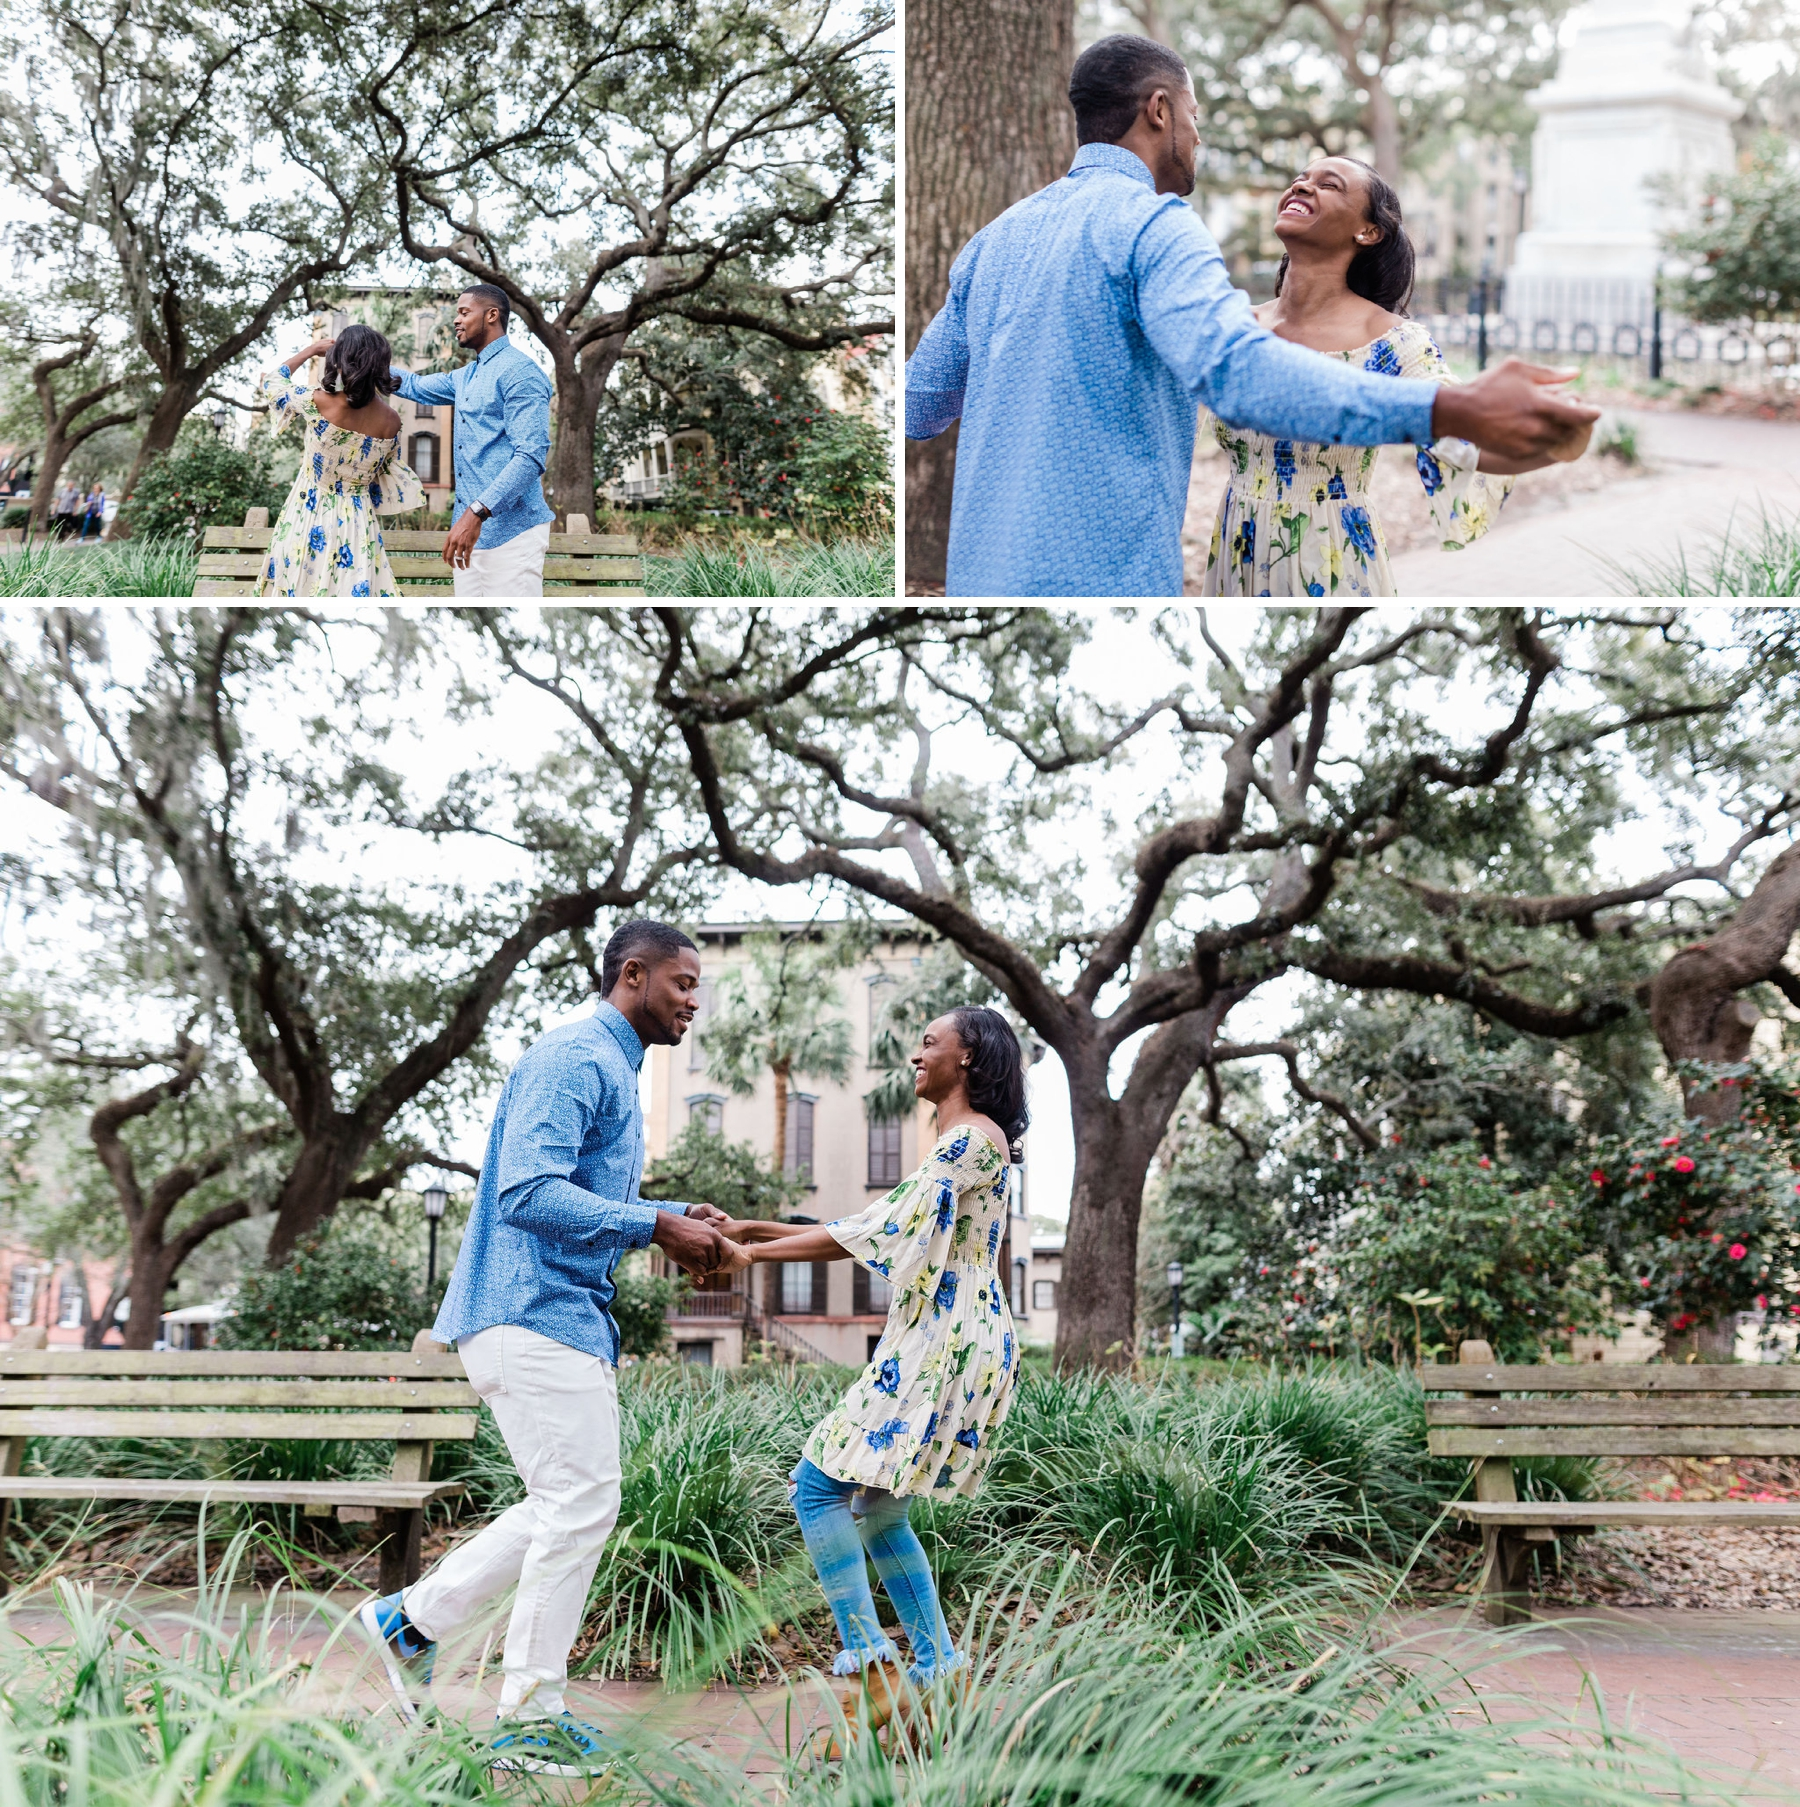 Apt-B-Photography-Charity-Troy-savannah-engagement-photographer-savannah-anniversary-photographer-5.jpg